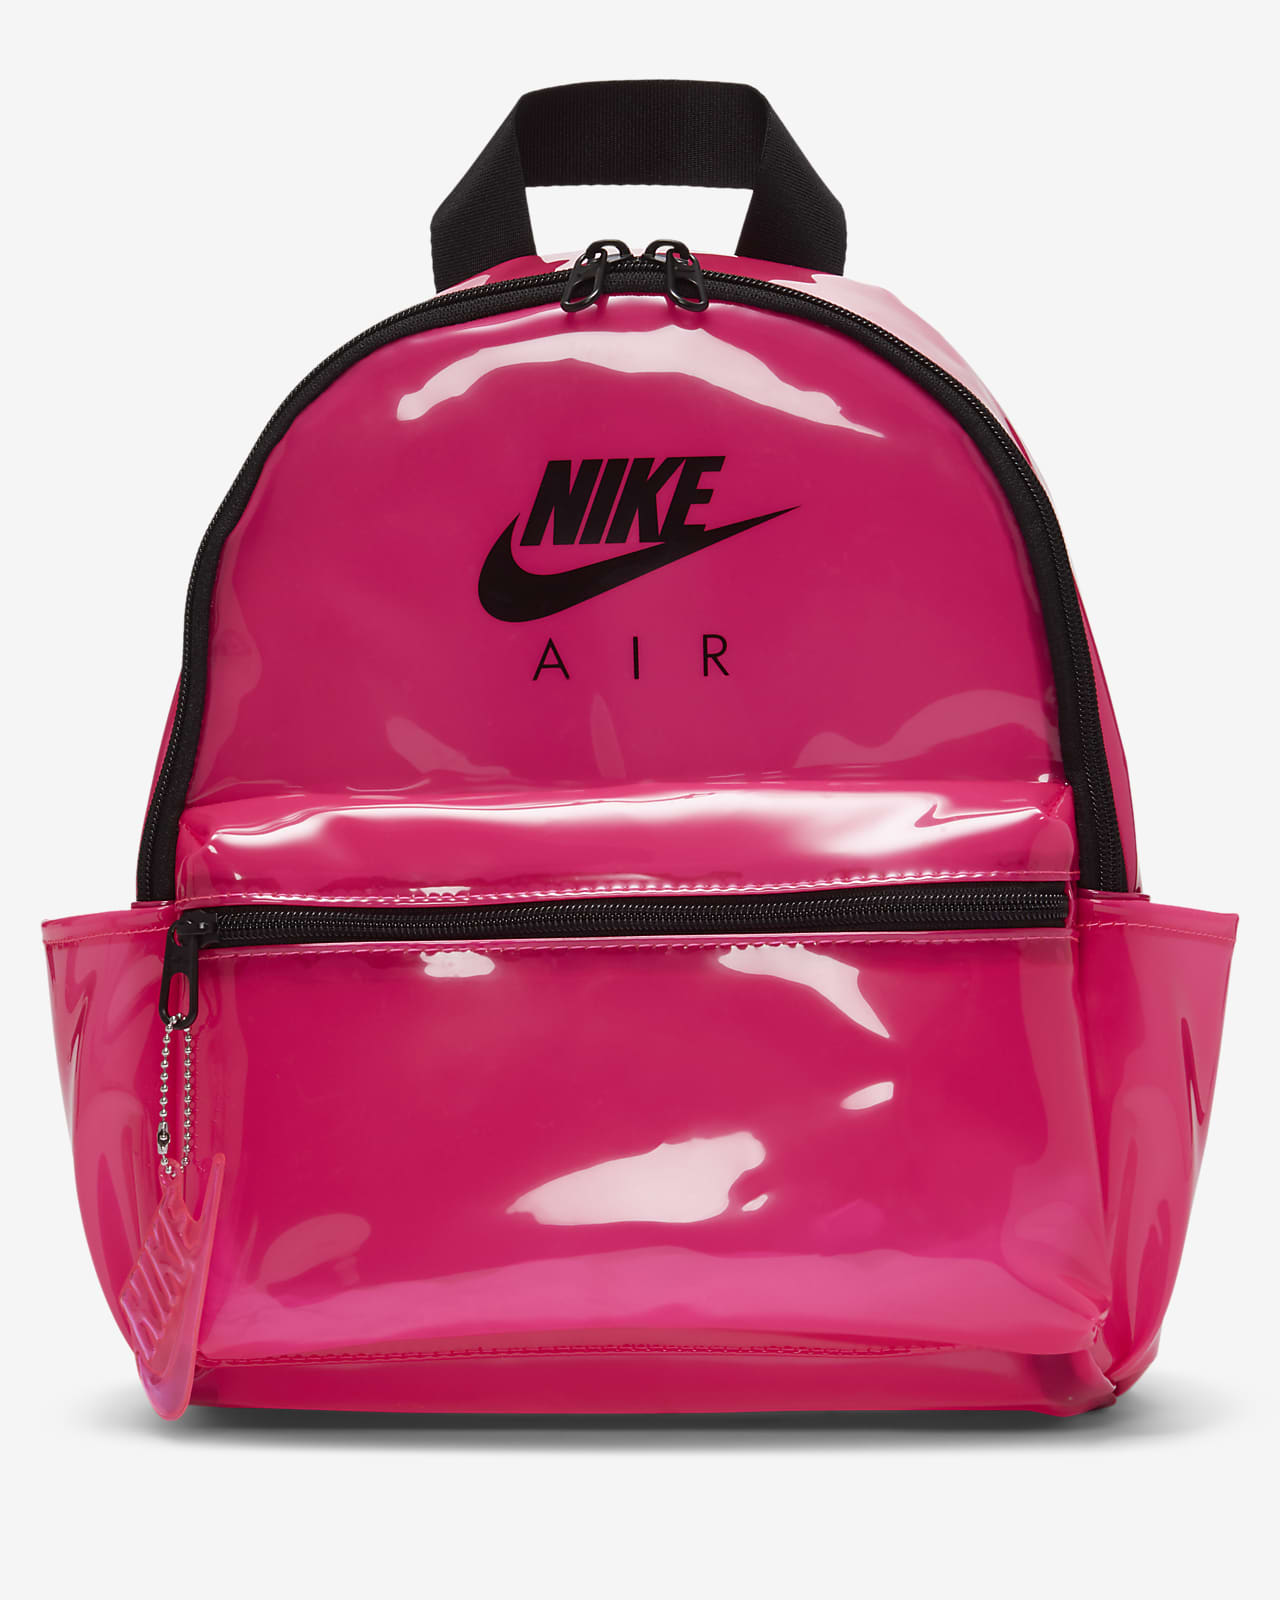 Nike Just Do It Mini Backpack in Pink